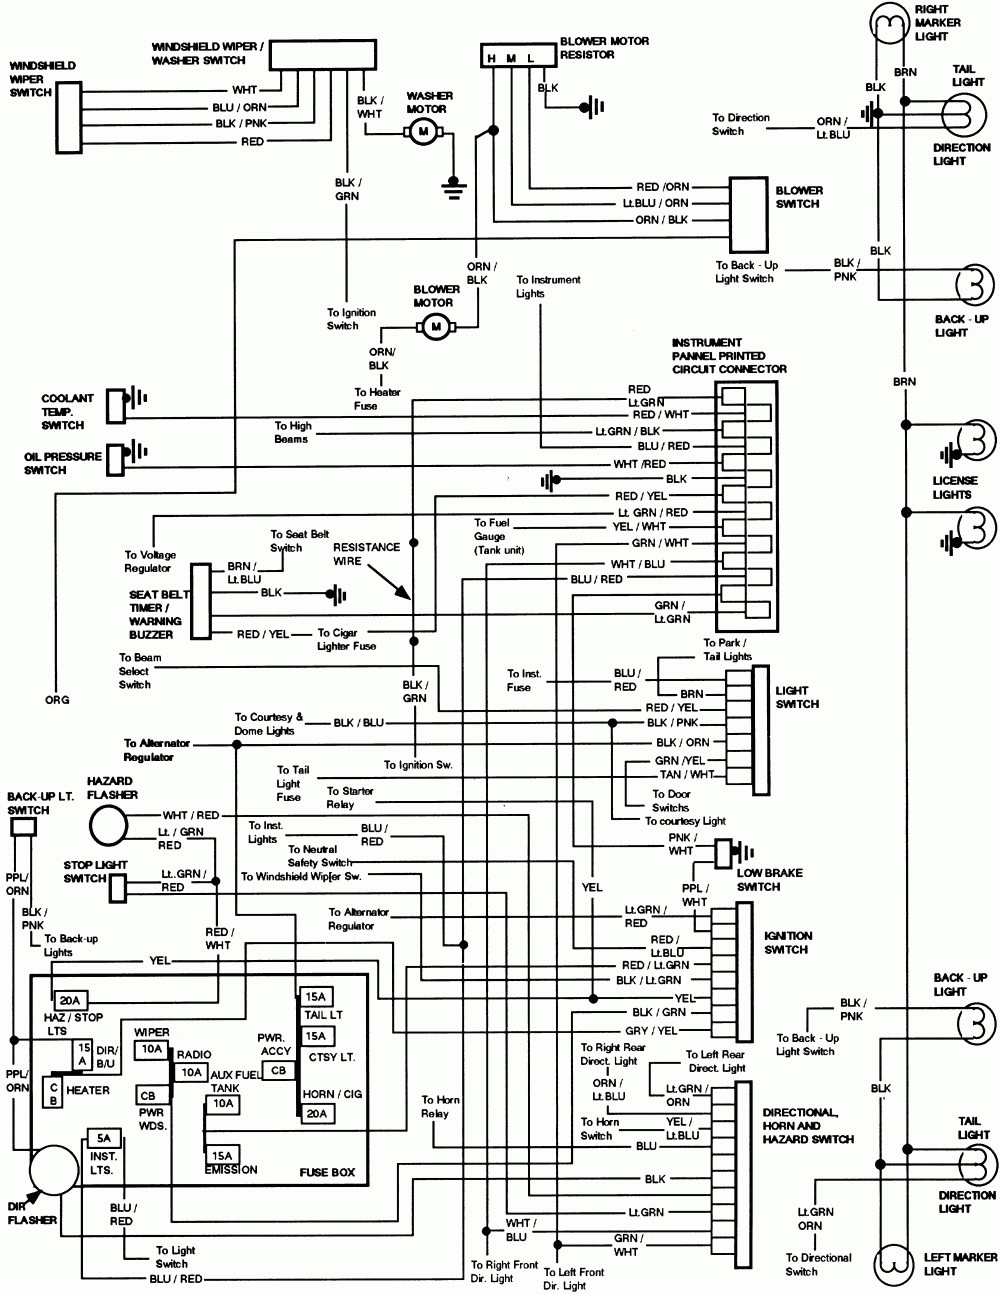 ford f 250 wiring harness diagram wiring diagram u2022 rh zerobin co Ford F-250 Lighting Schematic Ford Super Duty Wiring Diagram